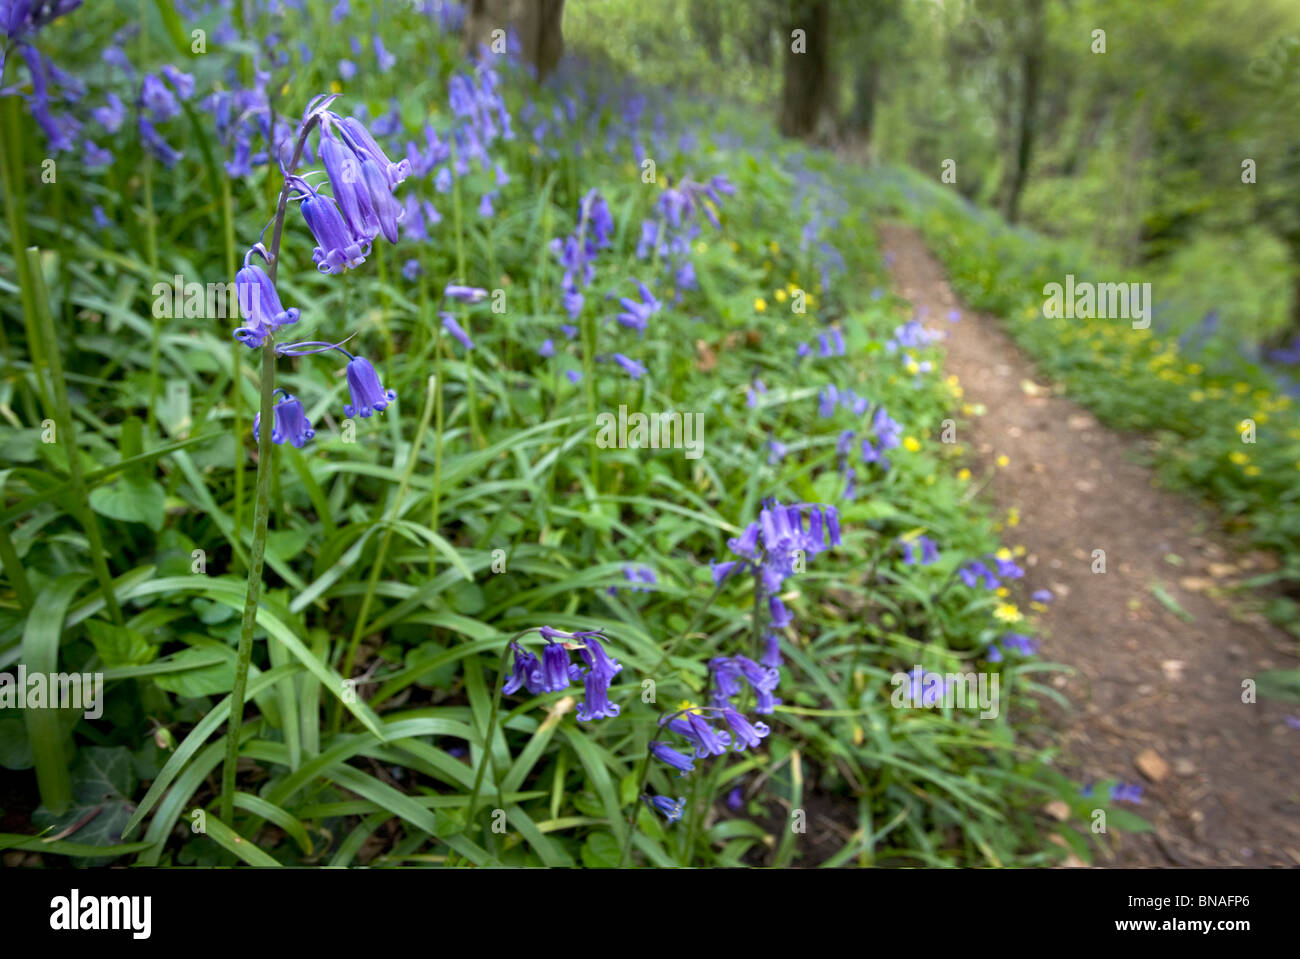 Bluebells Endymion non-scriptus growing by a woodland path in Somerset England - Stock Image